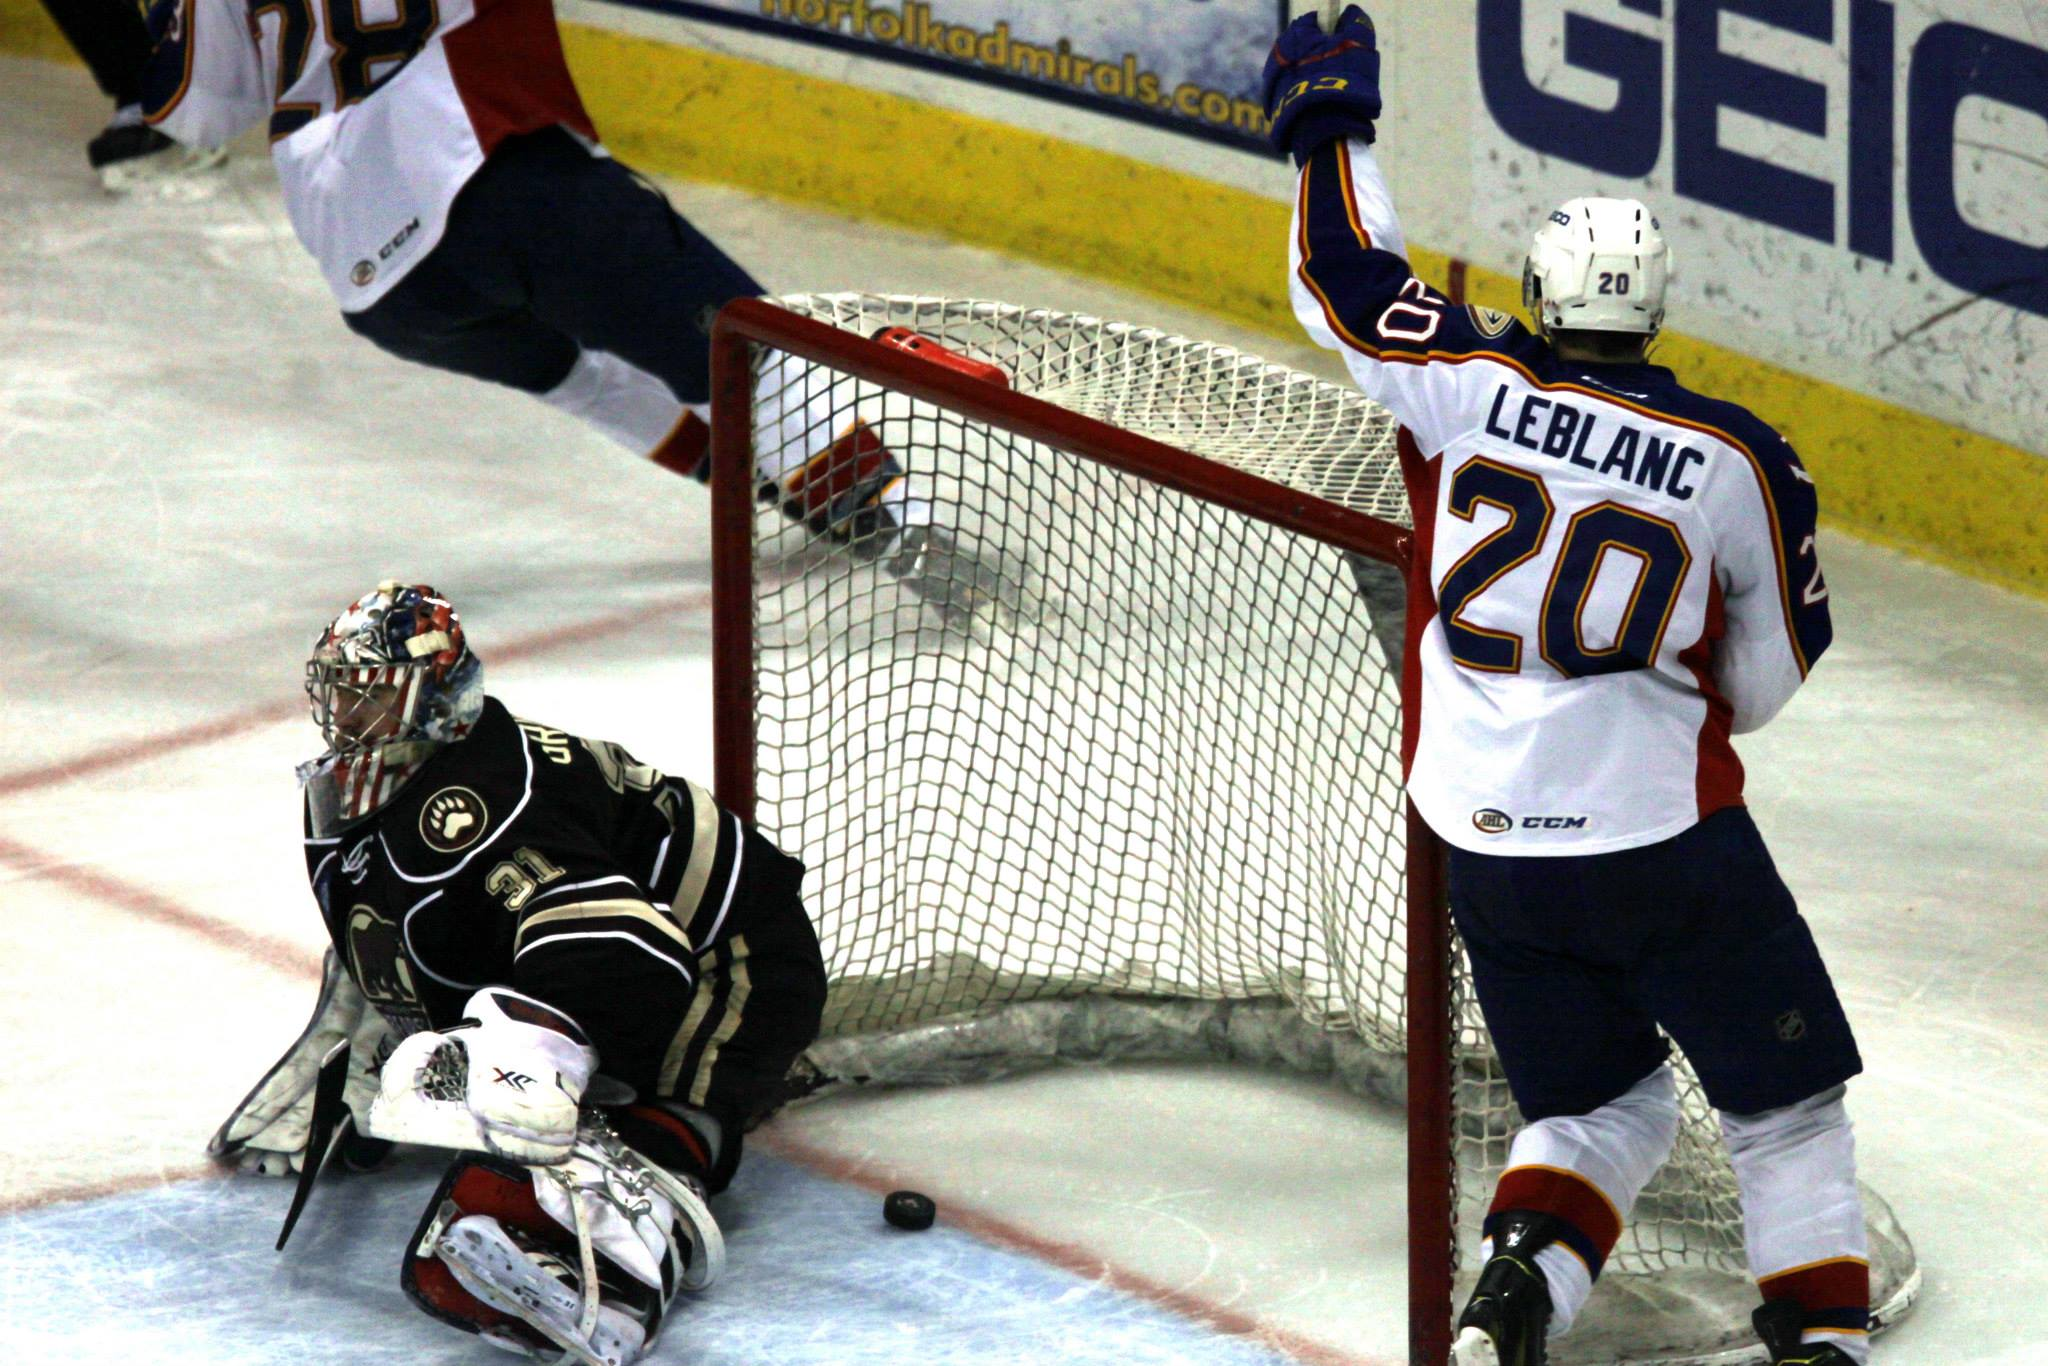 Louis Leblanc celebrates Antoine Laganiere's goal, the fourth in an Admrials' shut-out win over the Hershey Bears April 3, 2015